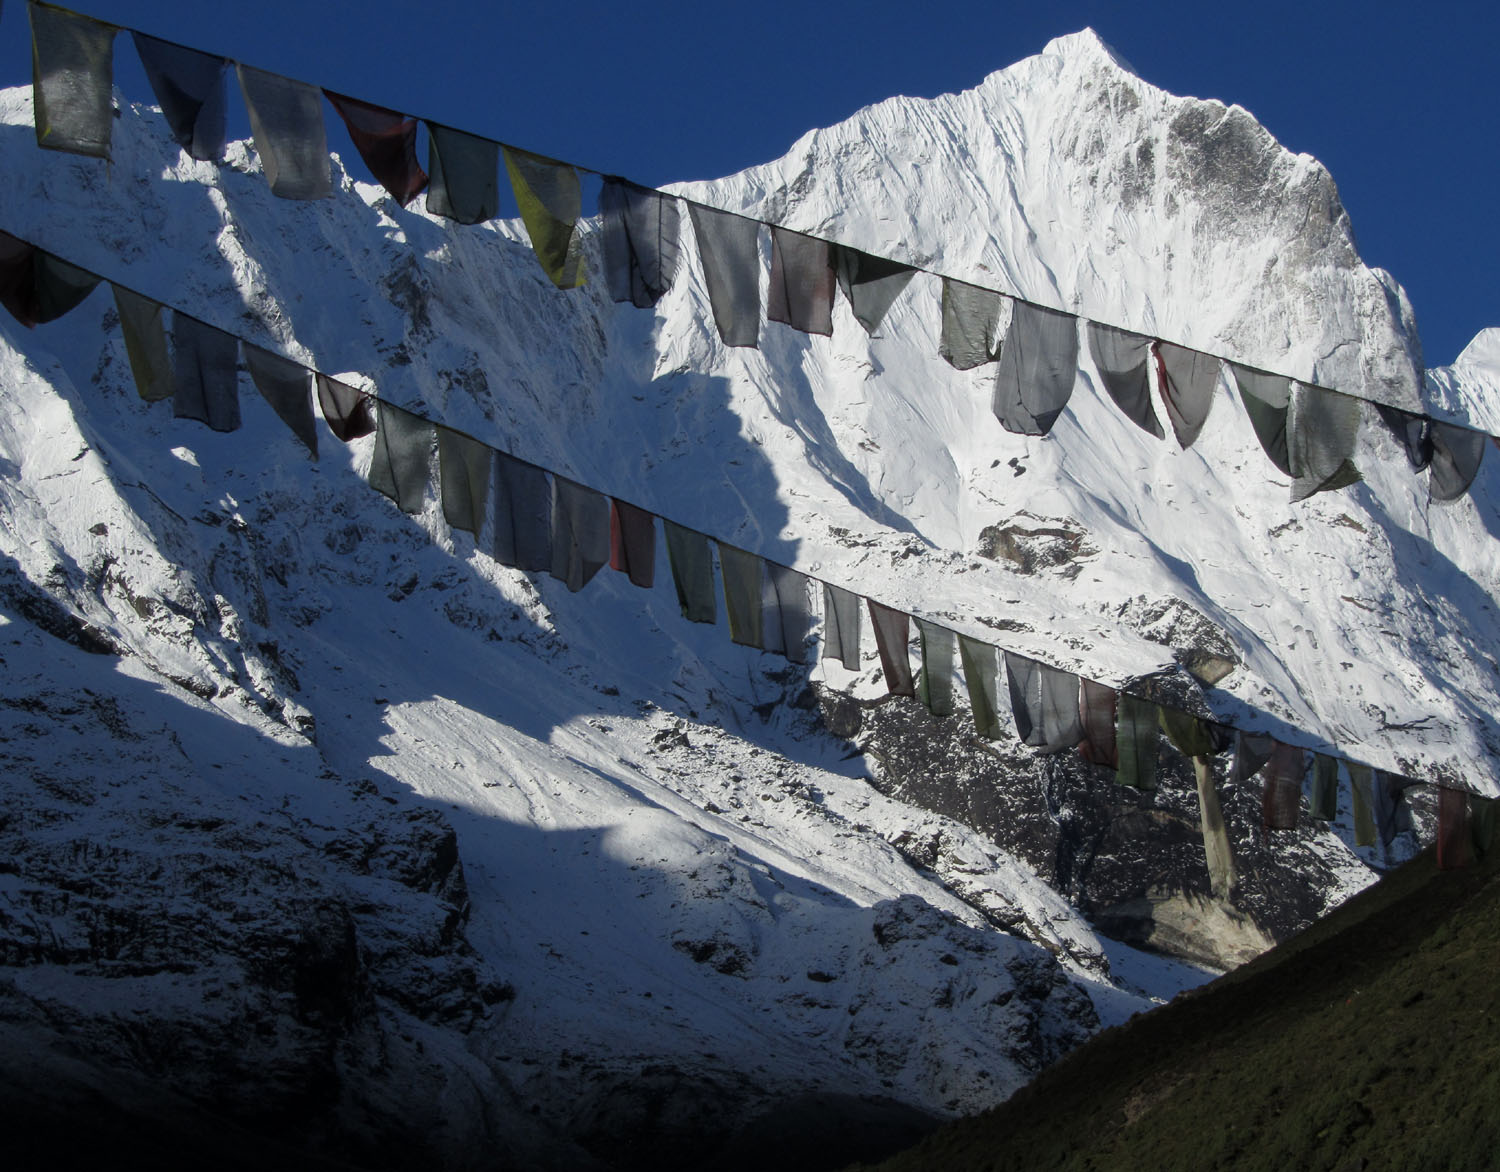 Nepal-Everest-Region-Trek-Day-07-Thame-Prayer-Flags